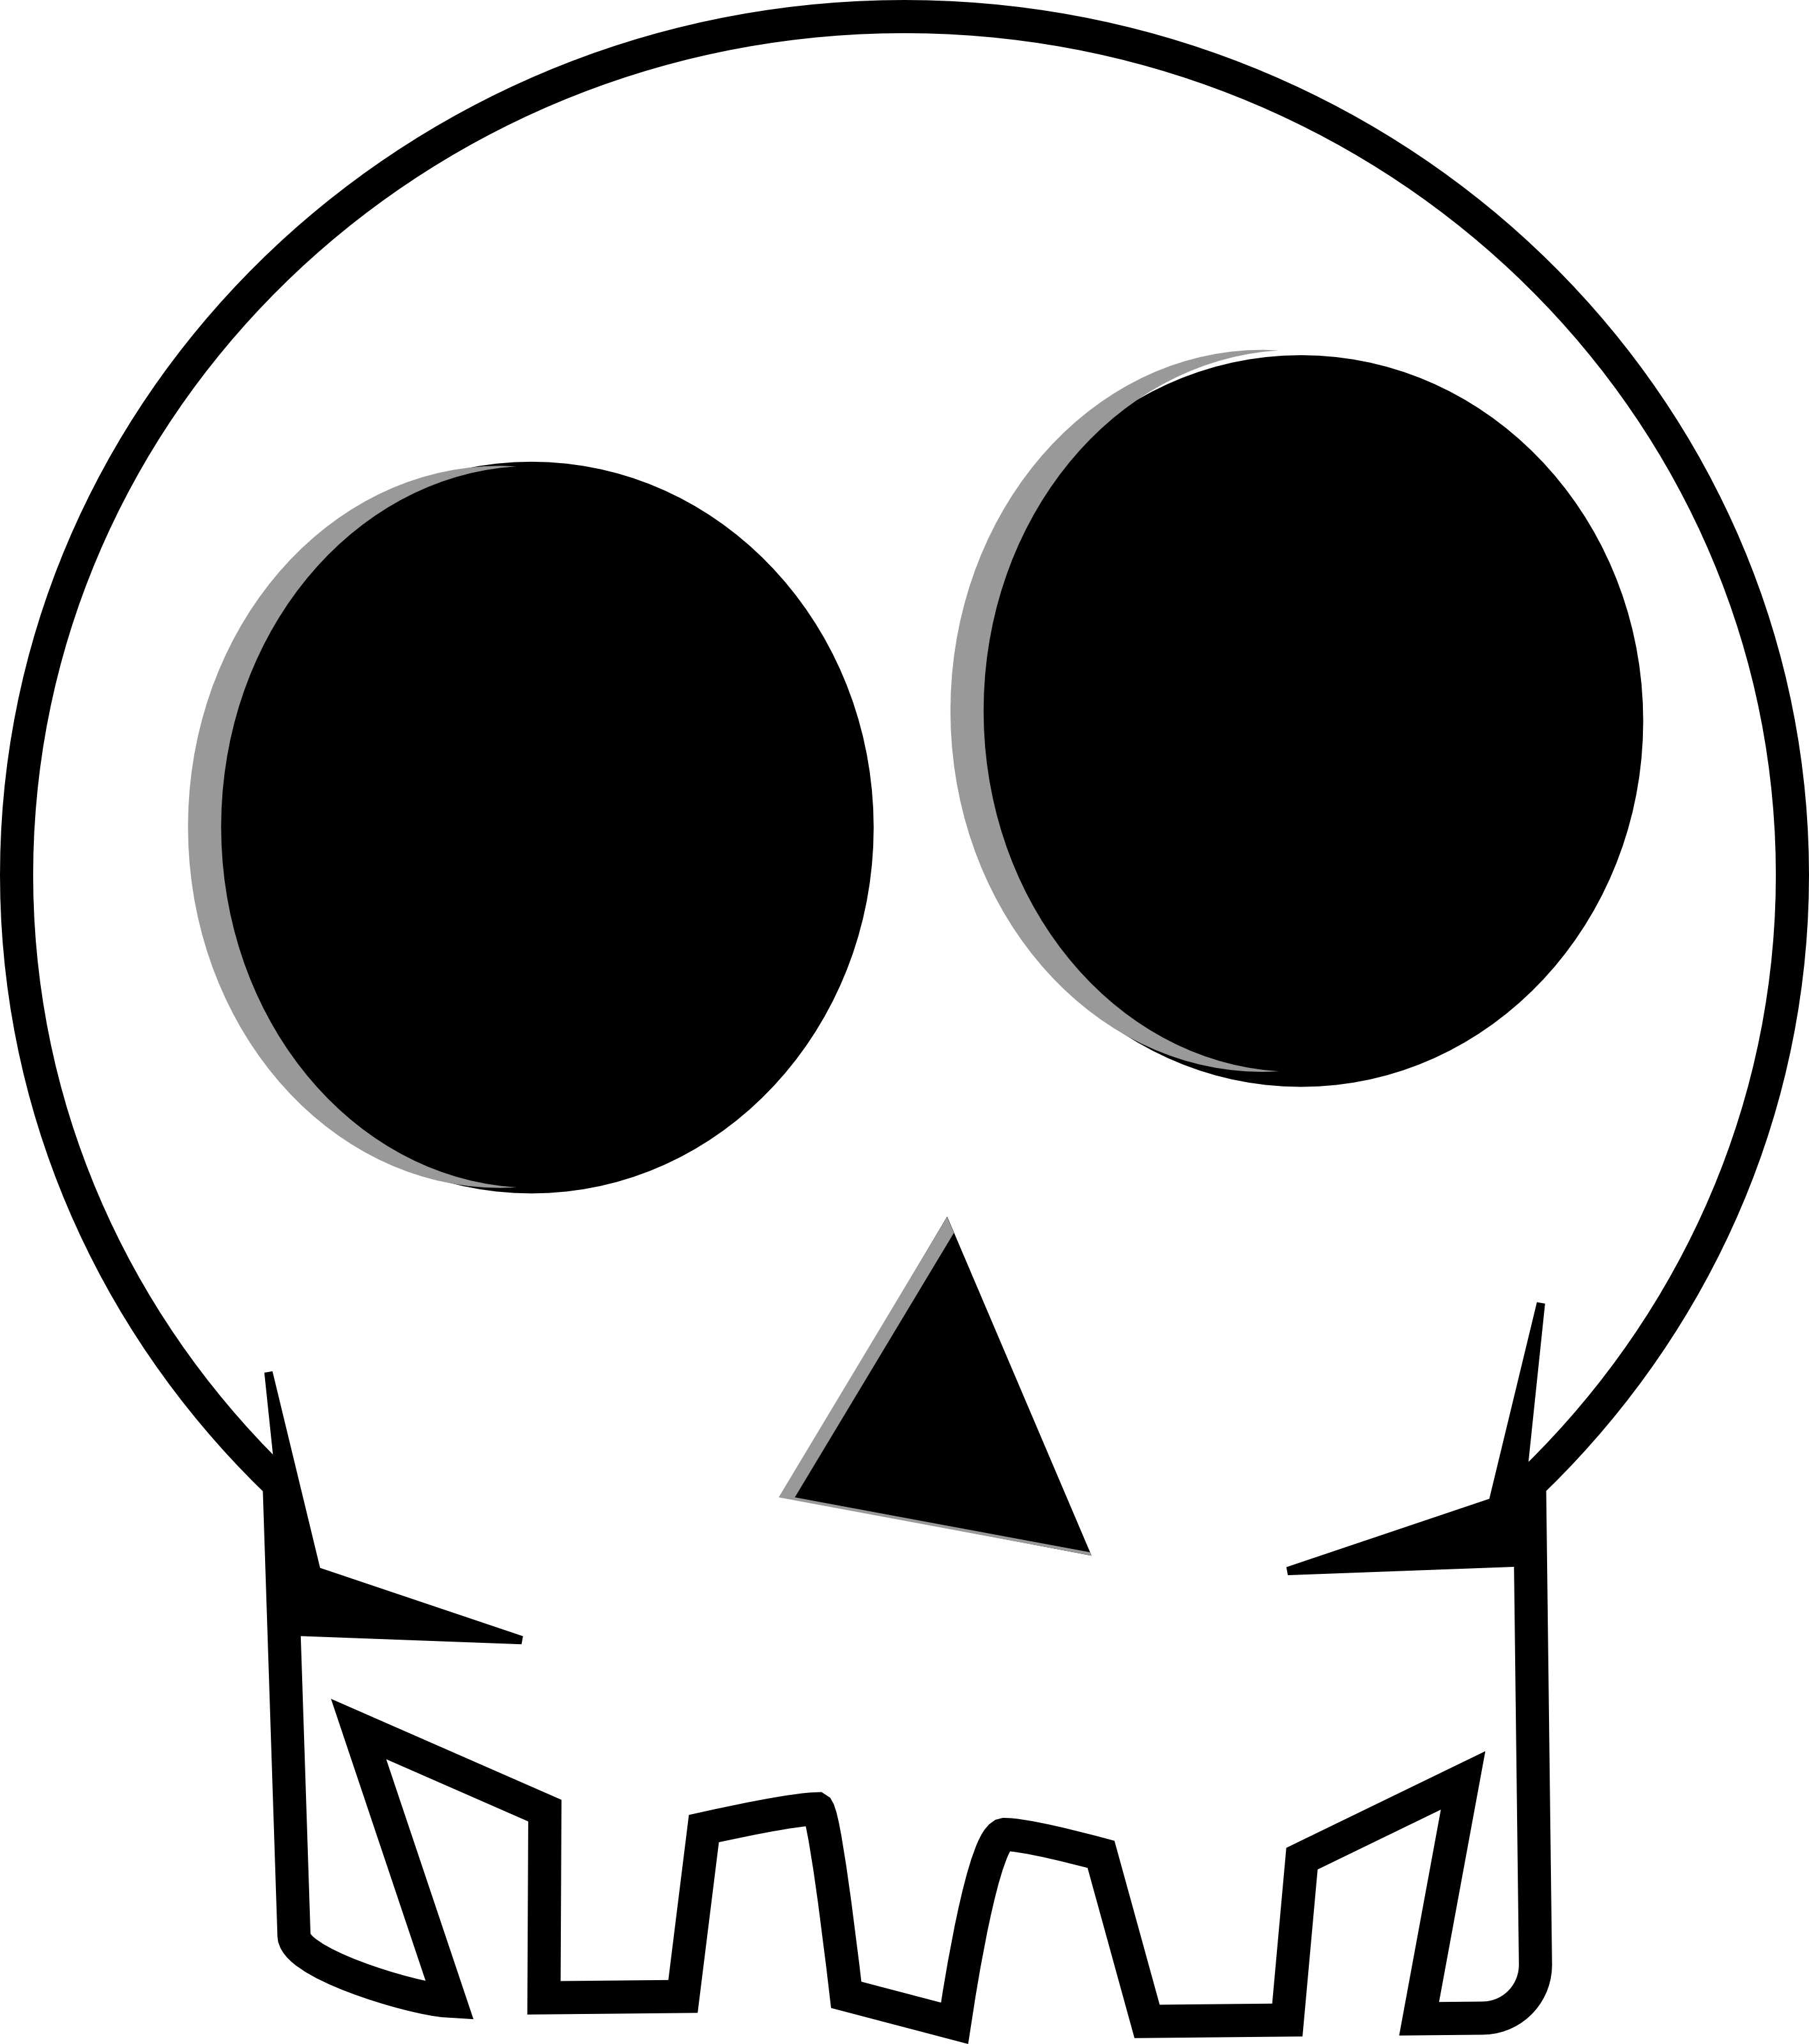 Halloween Skeleton Head Clipart | Clipart Panda - Free Clipart Images